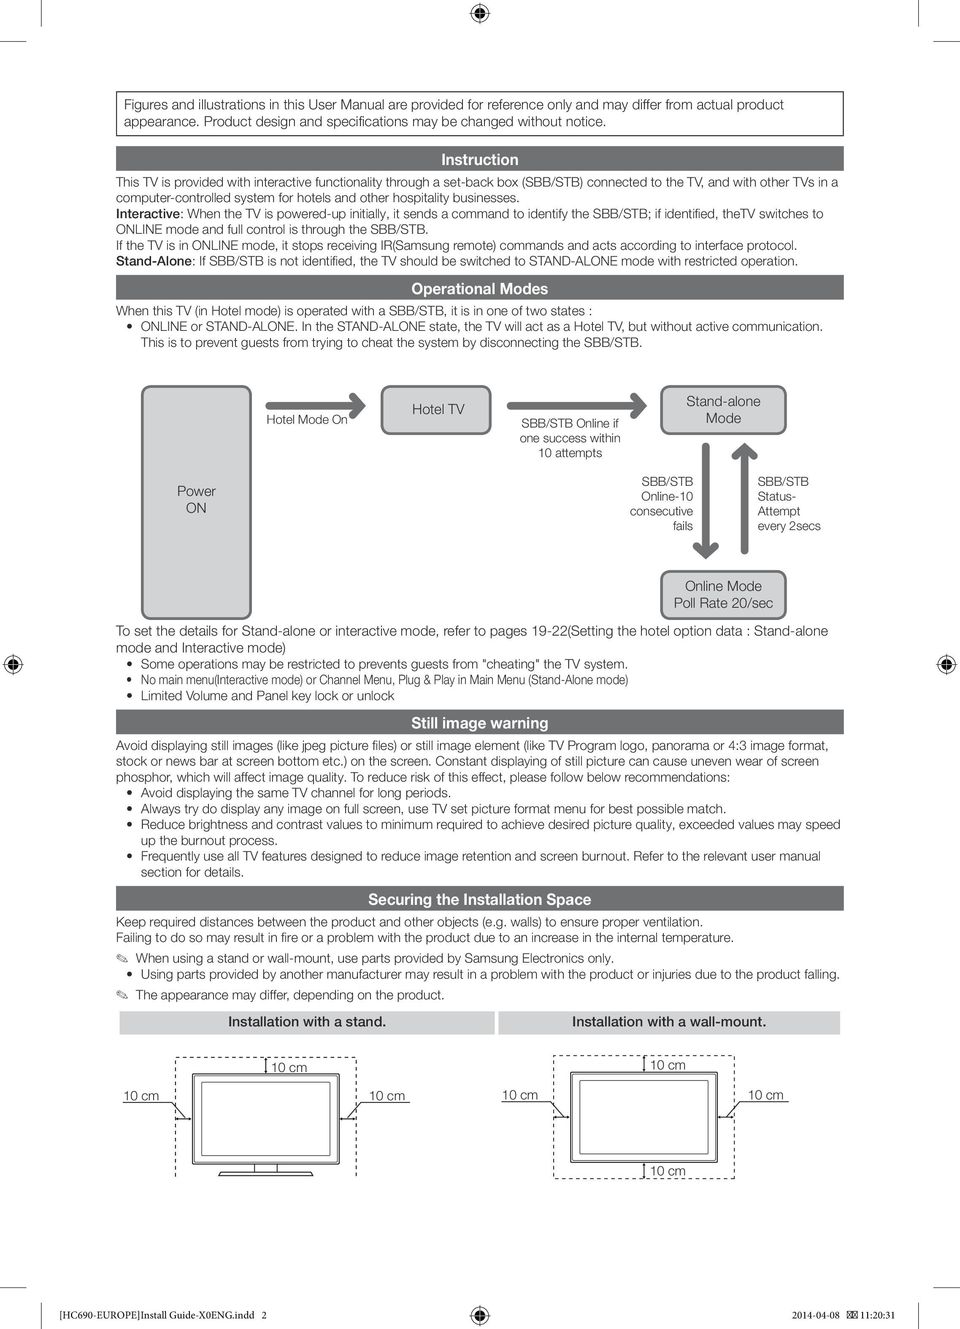 samsung tv instruction manual for led tv